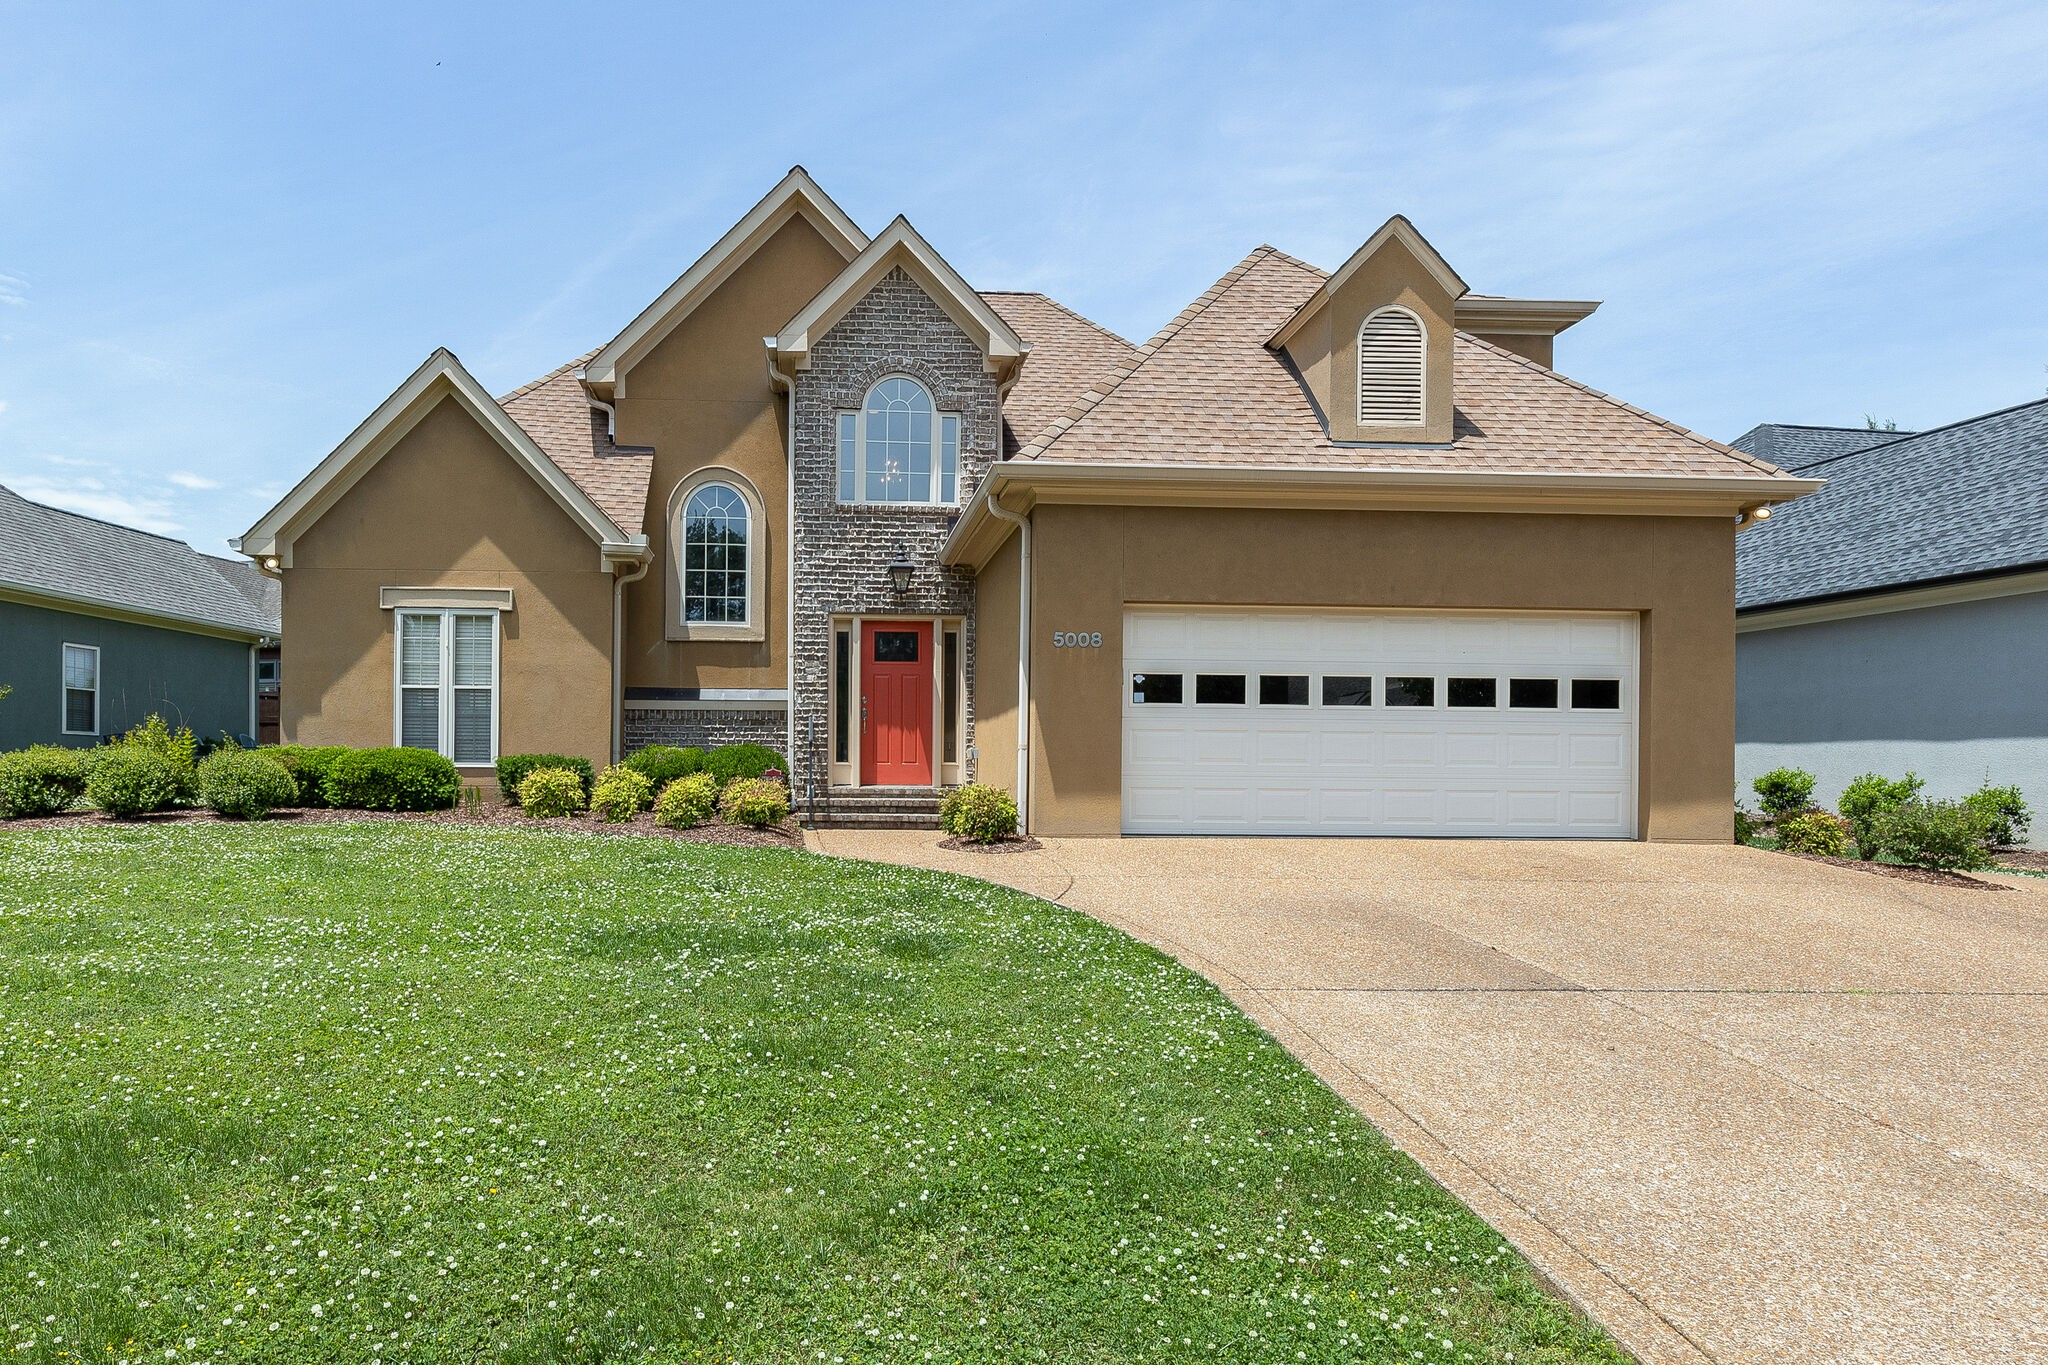 5008 Camelot Dr Property Photo - Columbia, TN real estate listing